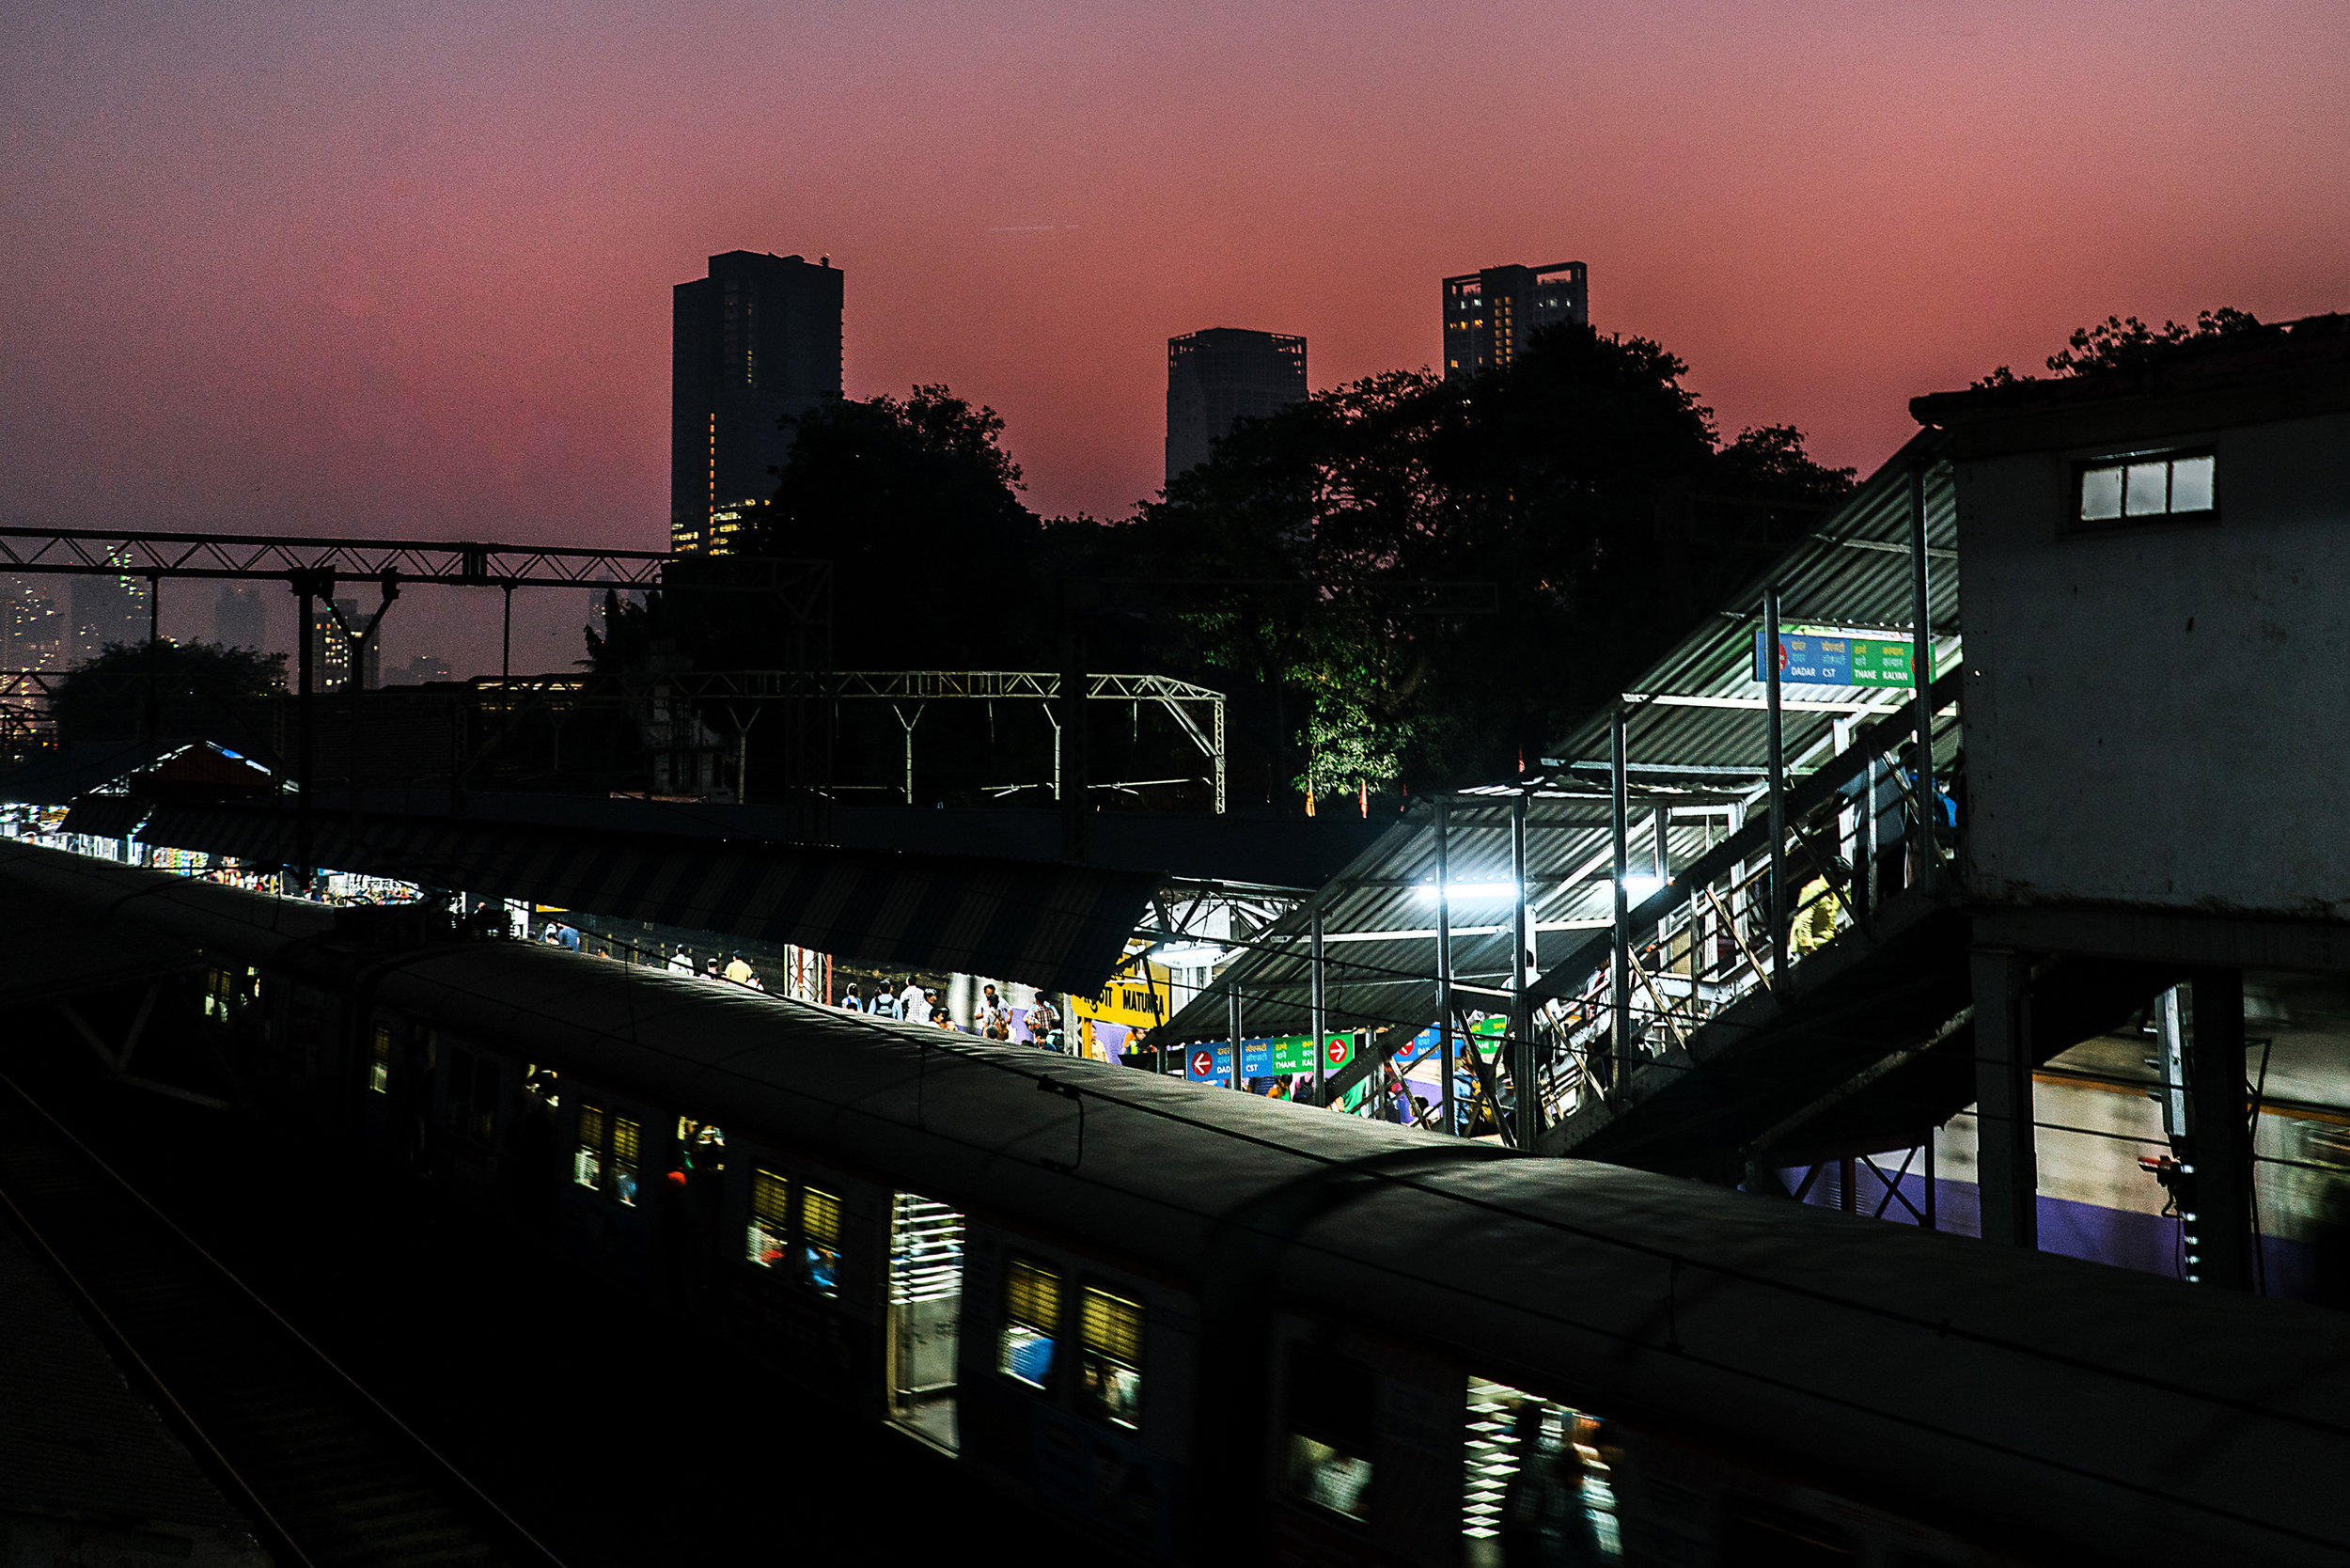 The Matunga Central Railway station on the Mumbai Suburban Rail network, also known as the Mumbai local trains. The trains and their environs are a popular cruising spot for gay men. They were the setting for Faraz Arif Ansari's short film Sisak, which charts an intense encounter between two gay men.